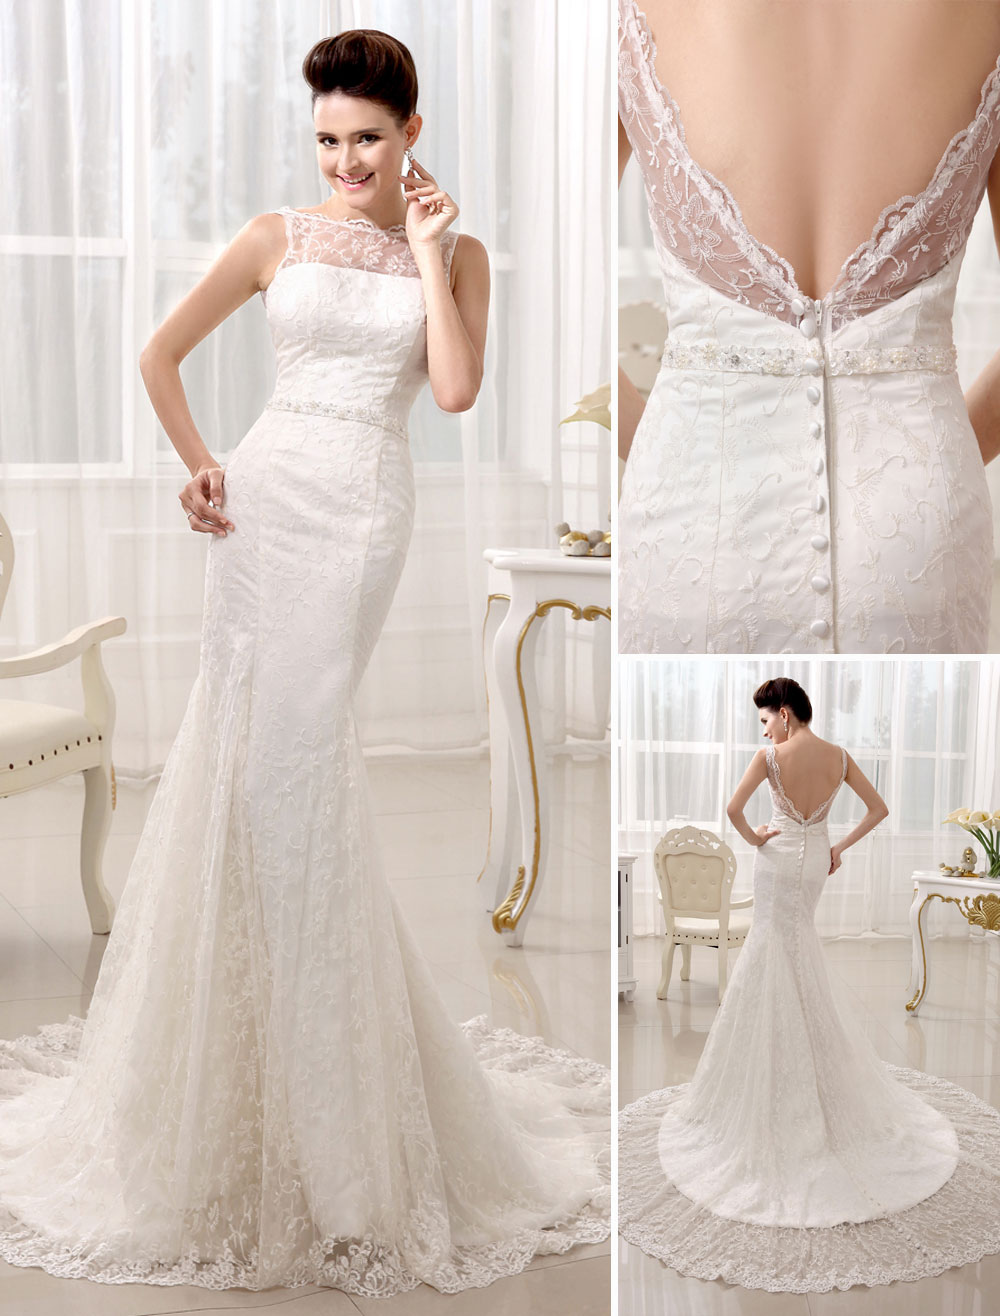 Bateau Neck Buttons Lace Court Train Ivory Bridal Wedding Dress